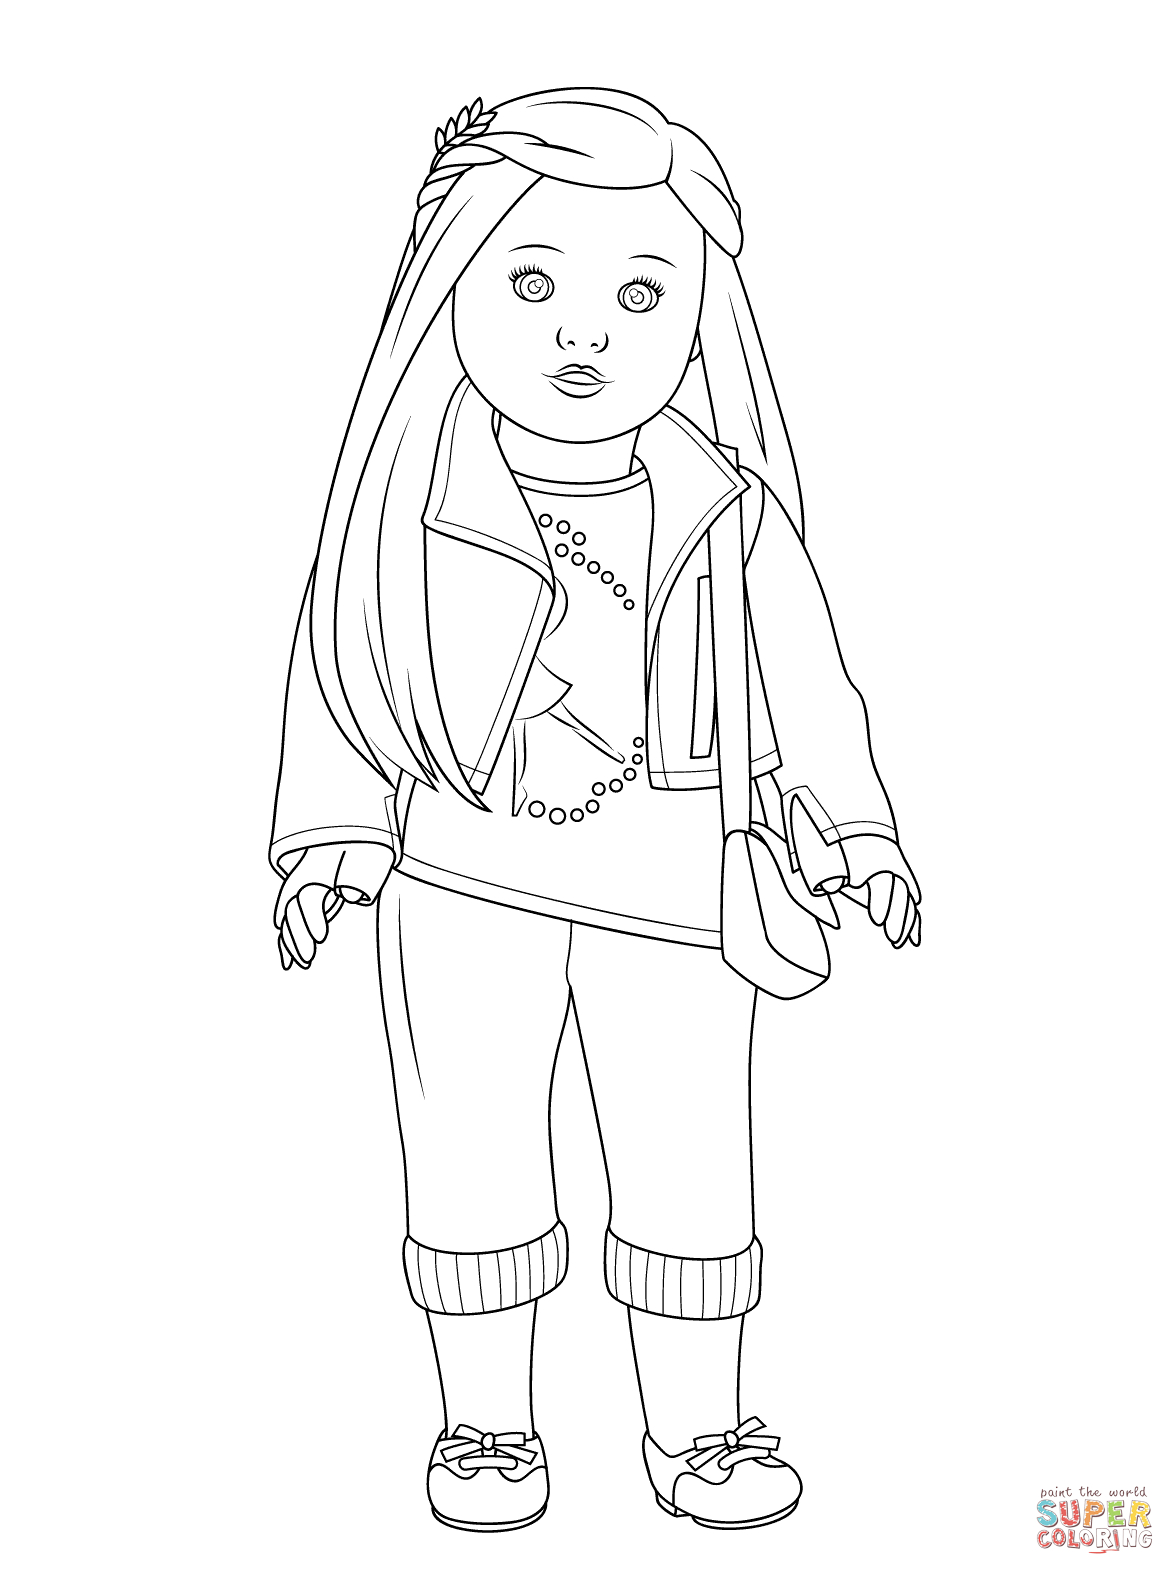 American Girl Isabelle Doll Coloring Page | Free Printable Coloring - Free Printable Coloring Pages For Girls